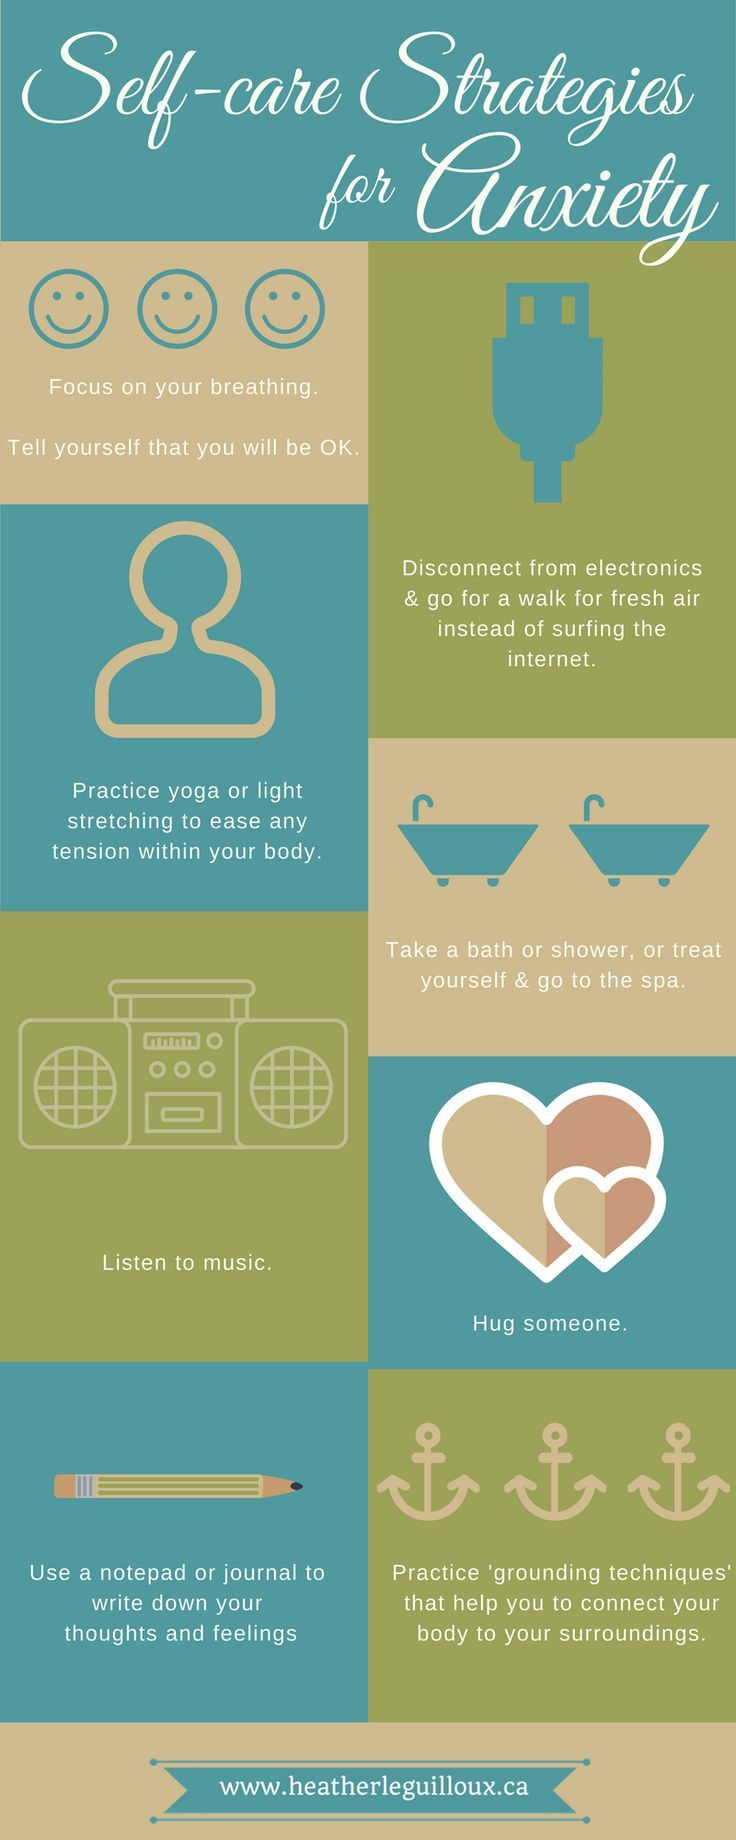 Infographic + blog post /hleguilloux/ identifying some helpful self-care strategies to help with symptoms of anxiety | anxiety disorders | mental health | coping | therapy | medication